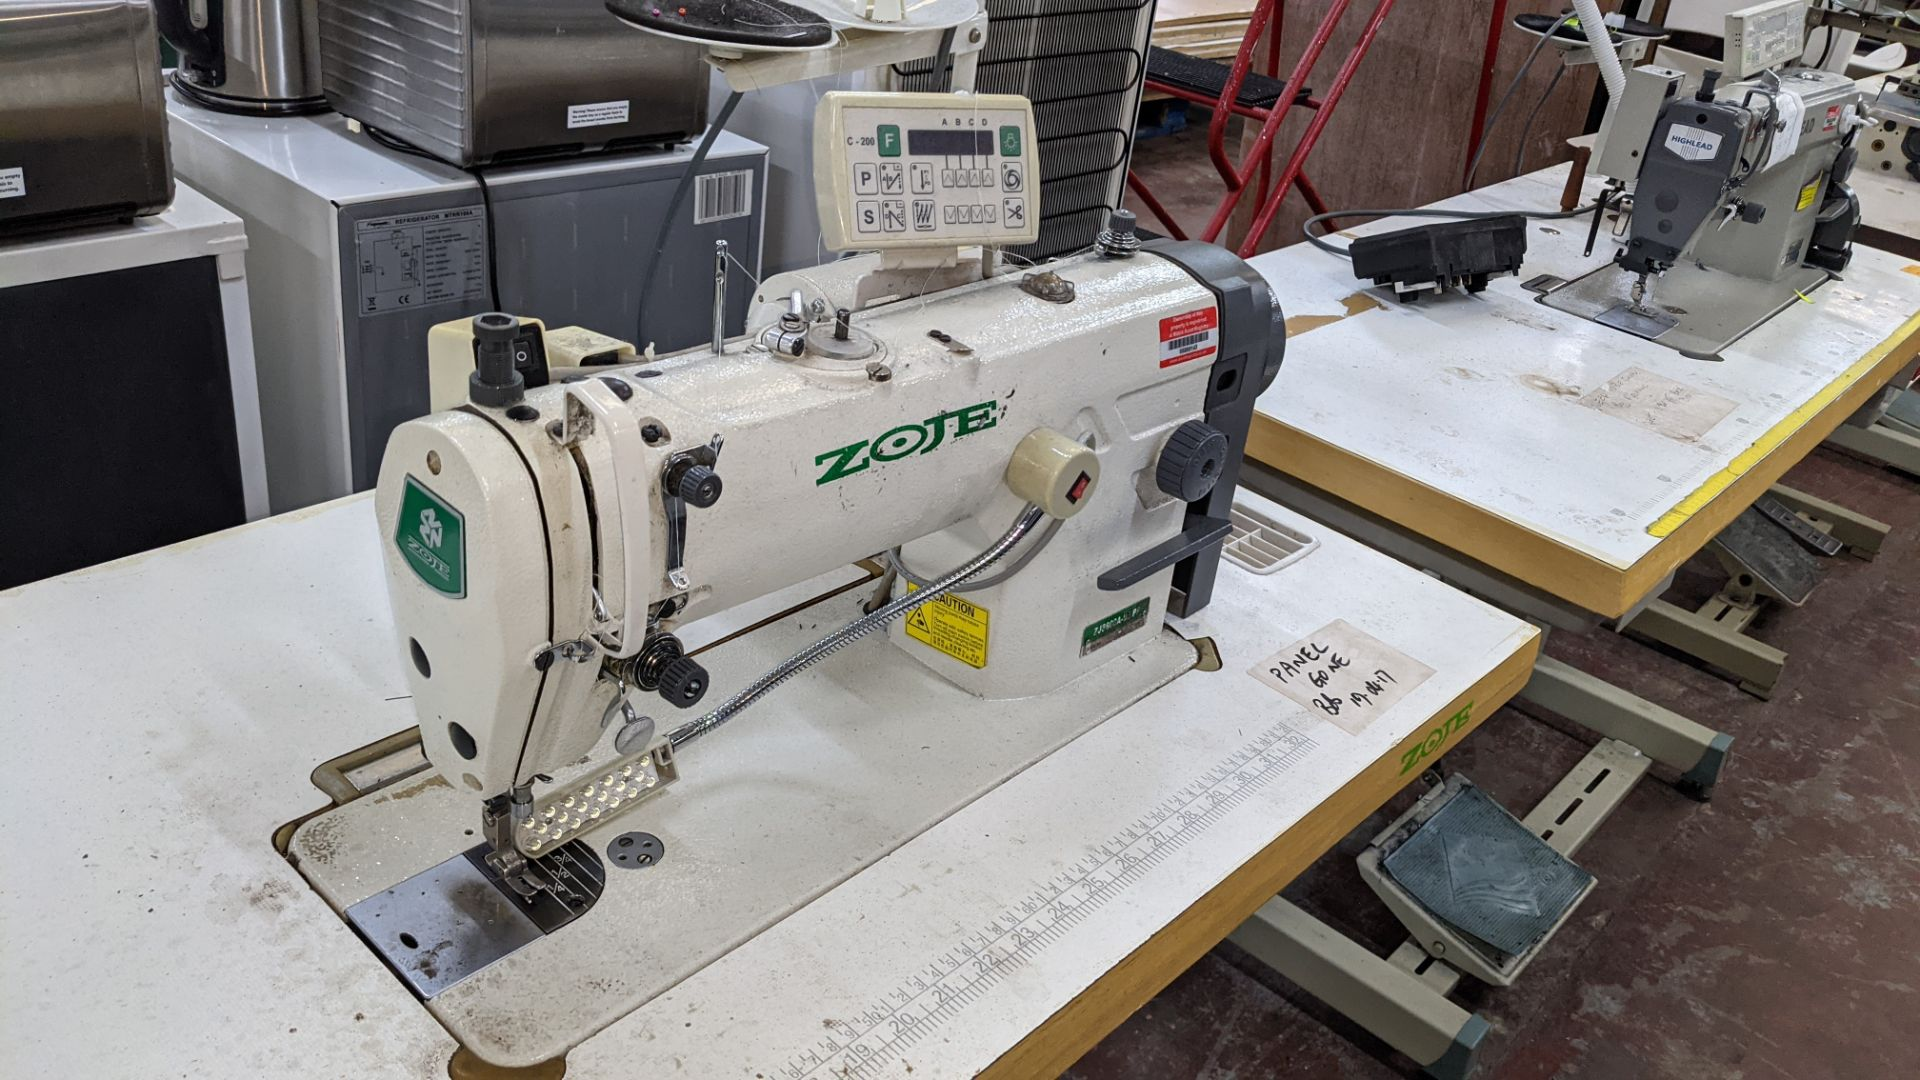 Zoje model ZJ8800A-D3/PF sewing machine with model C-200 digital controller - Image 8 of 15